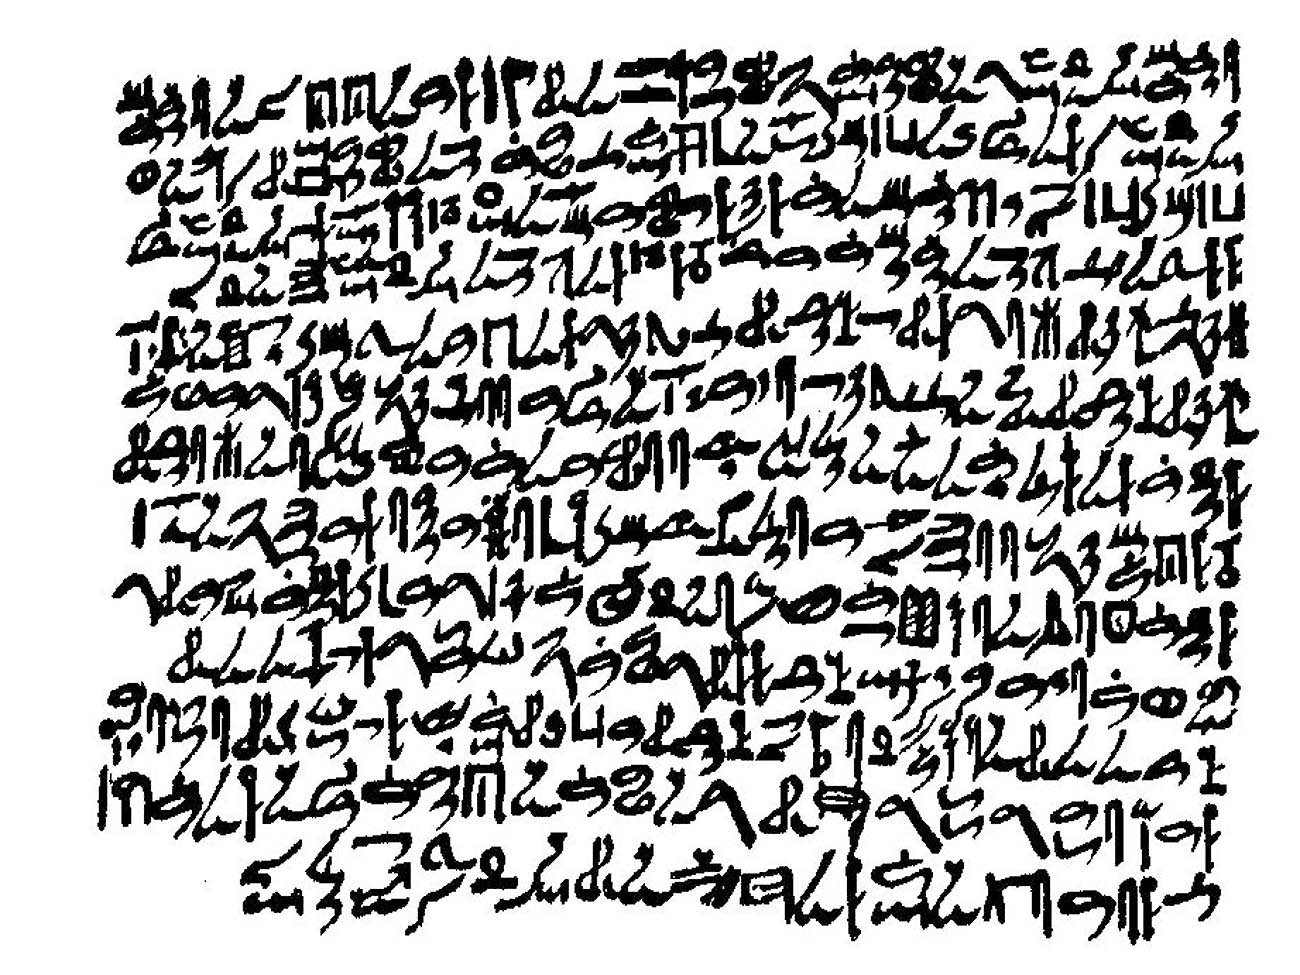 precepts of ptah Ptah-hotep, extract, precepts of ptah-hotep to his son, english translation, records of the past, (sayce), davis, william stearnes, readings in english, history, primary source, online.